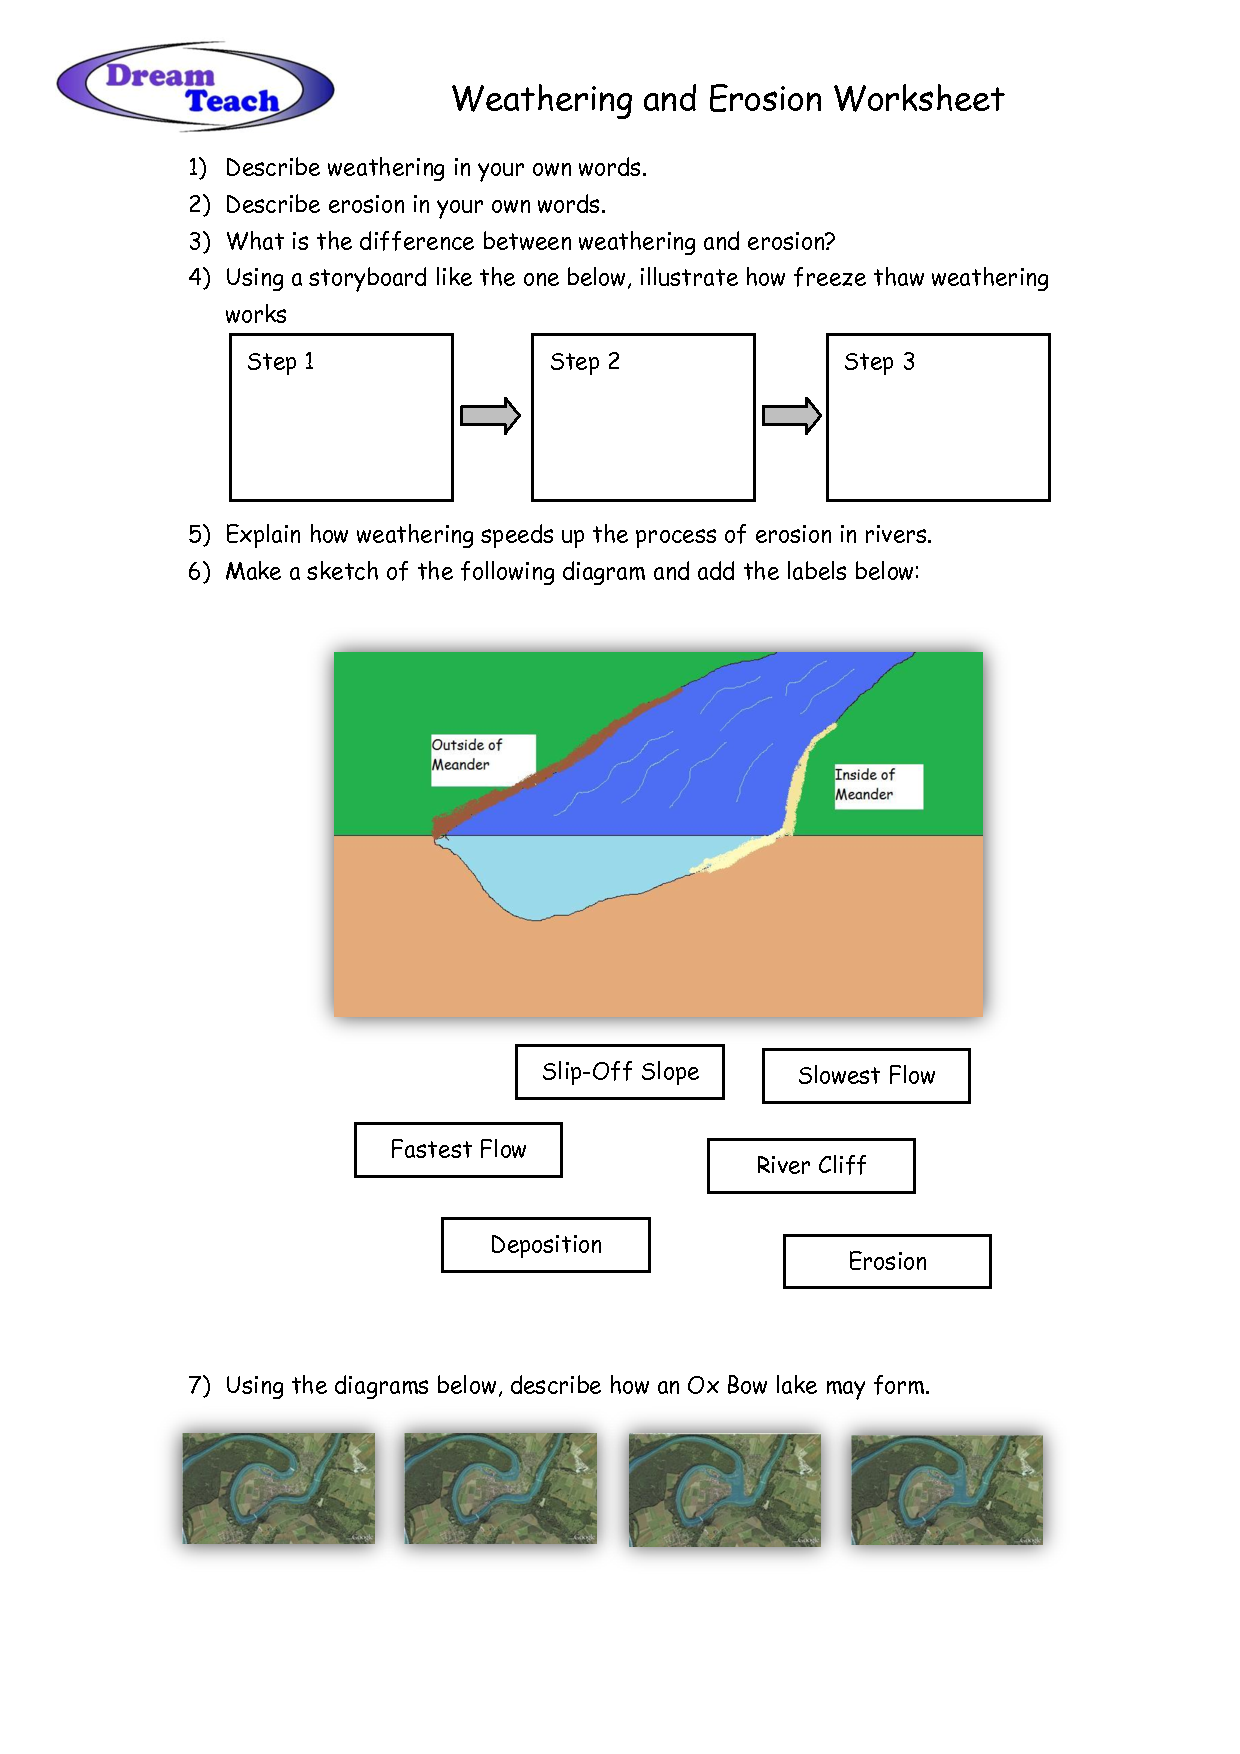 Worksheets Weathering And Erosion Worksheets For Kids weathering and erosion worksheet school pinterest worksheets worksheet